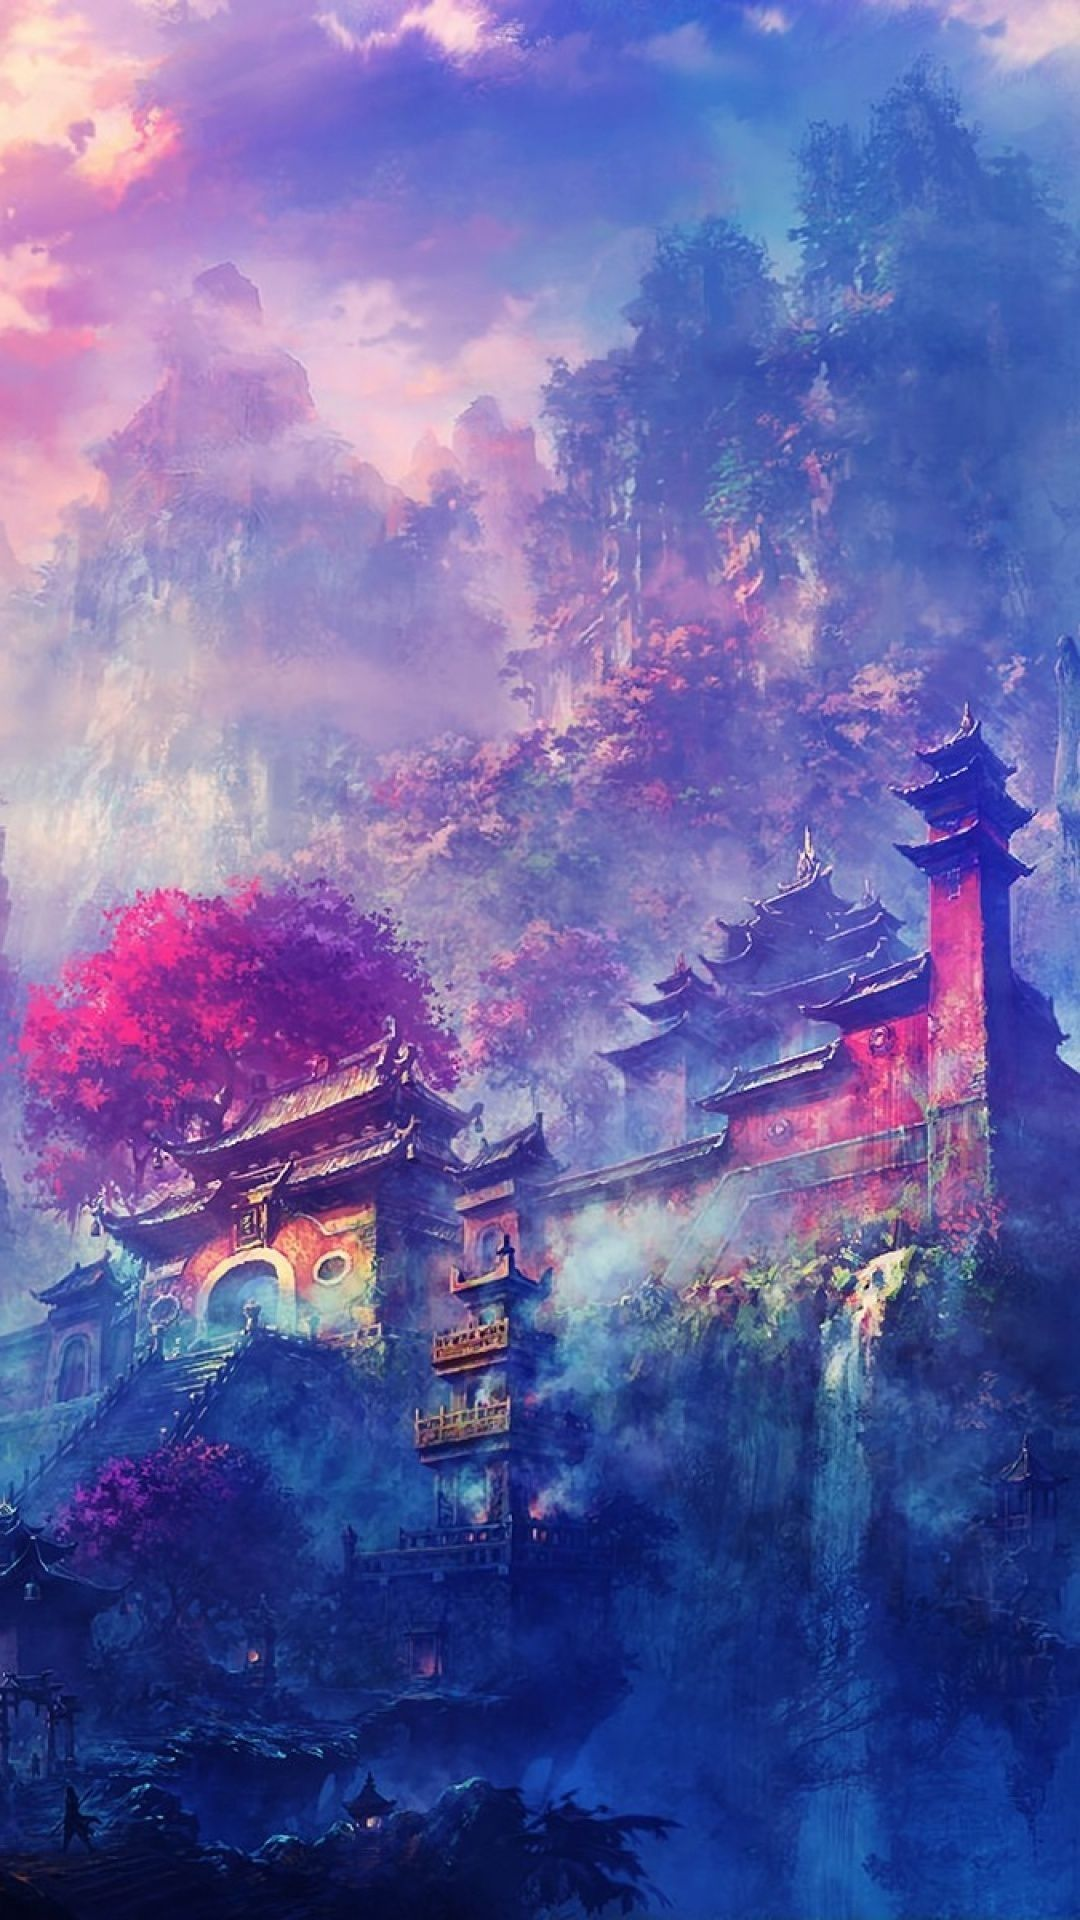 Painting Image In 2020 Iphone Wallpaper Japanese Art Android Wallpaper Art Art Wallpaper Iphone